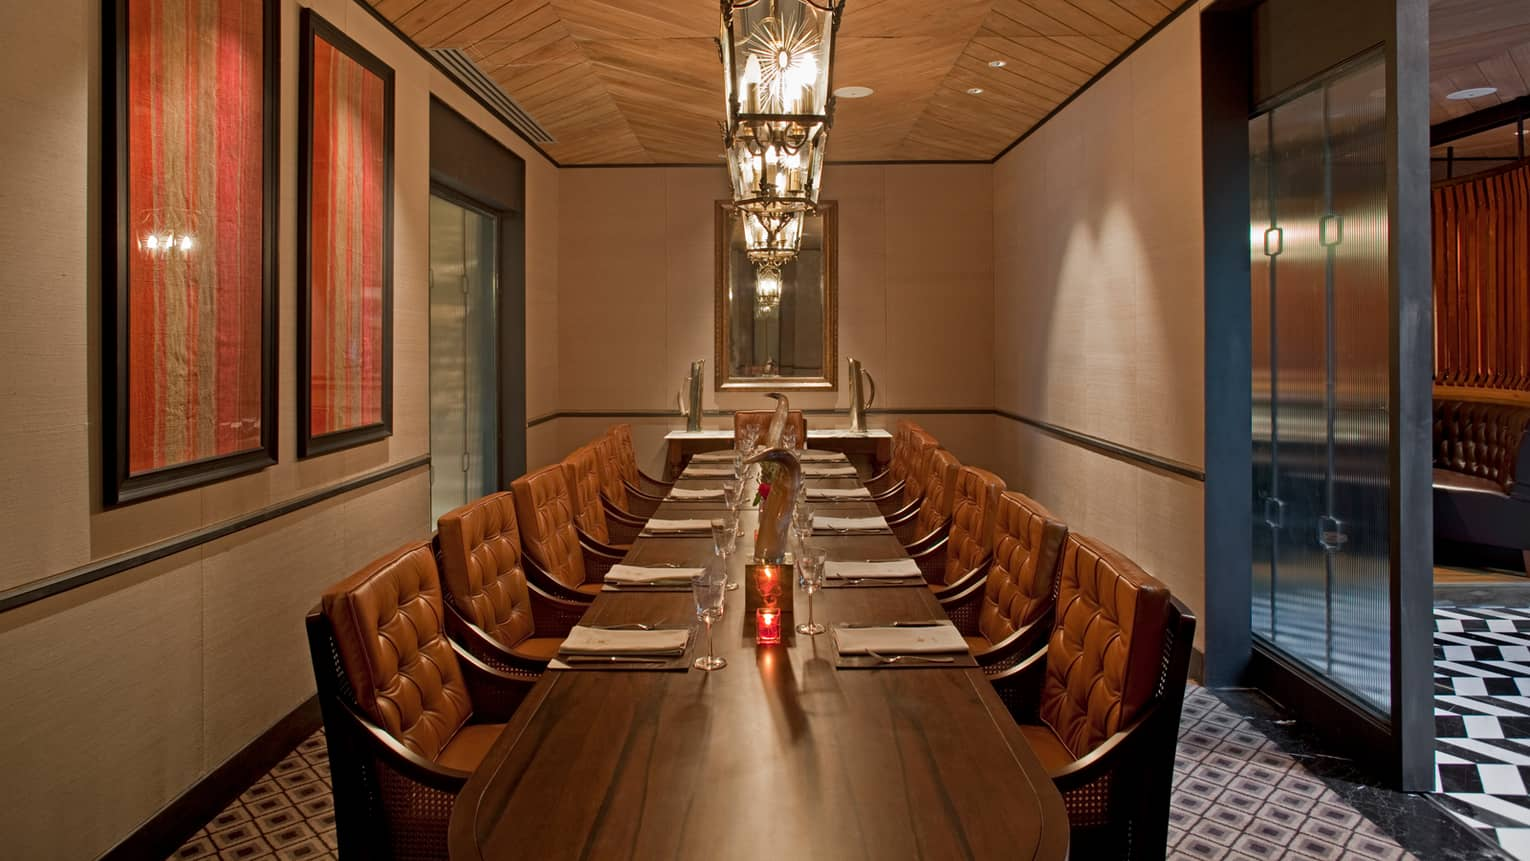 Long wood private dining table with padded brown leather chairs under row of lights, framed art on wall